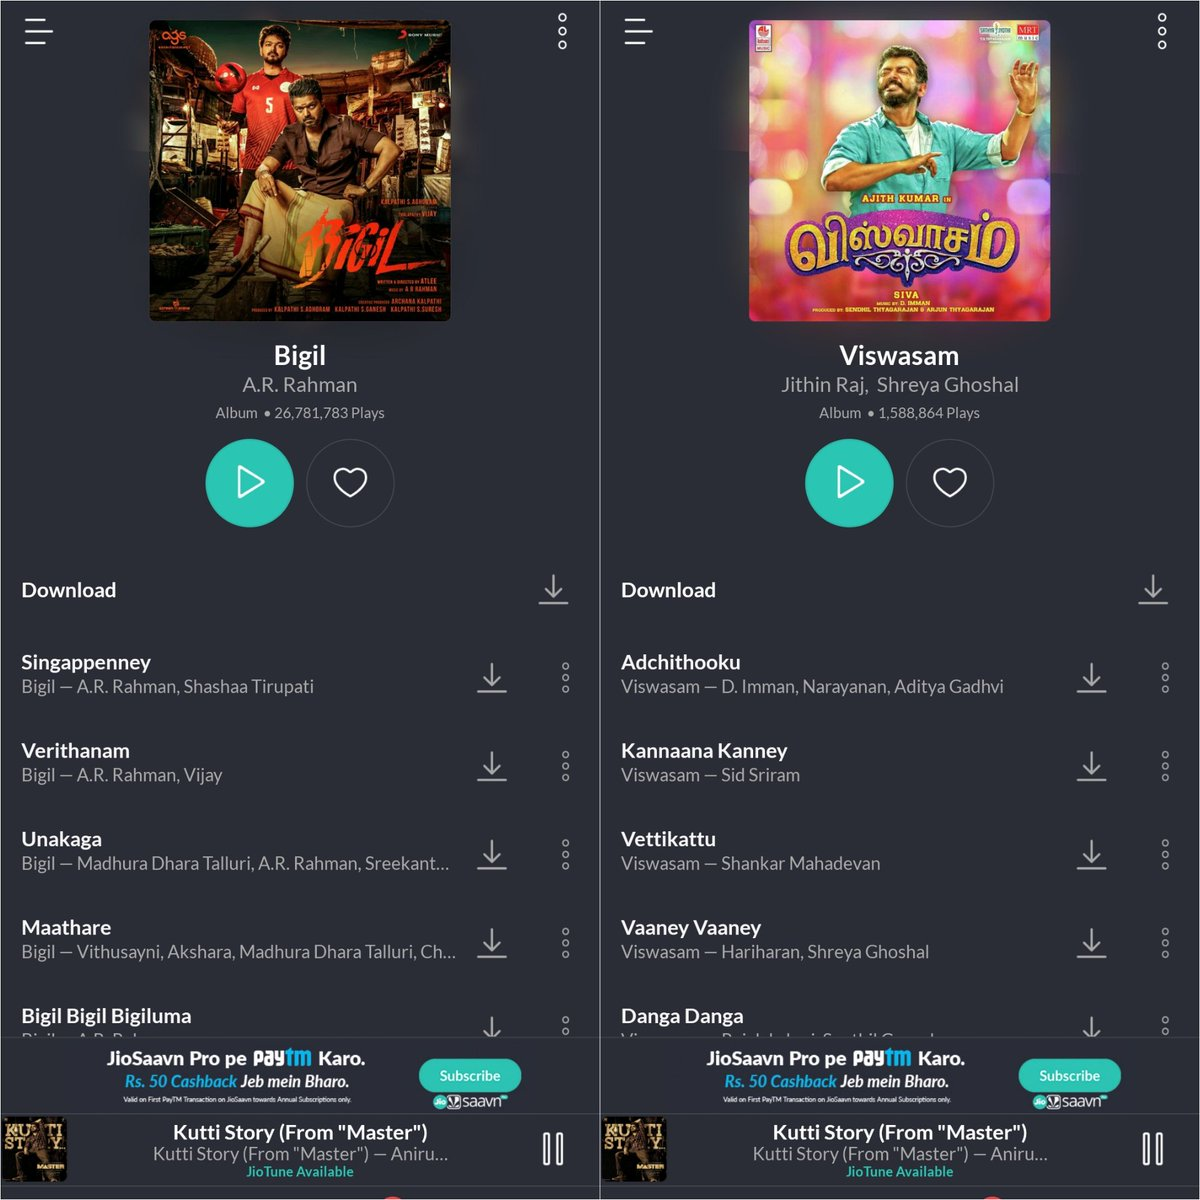 #Bigil Album Which is Released 10Months+ after #Viswasam Got 25M+ Plays More. Fanbase Speaks 😎  #Bigil Album - 26.7M+  #Visawasam - 1.5M+ / Waiting for #Master Album 🥁🔥 @anirudhofficial